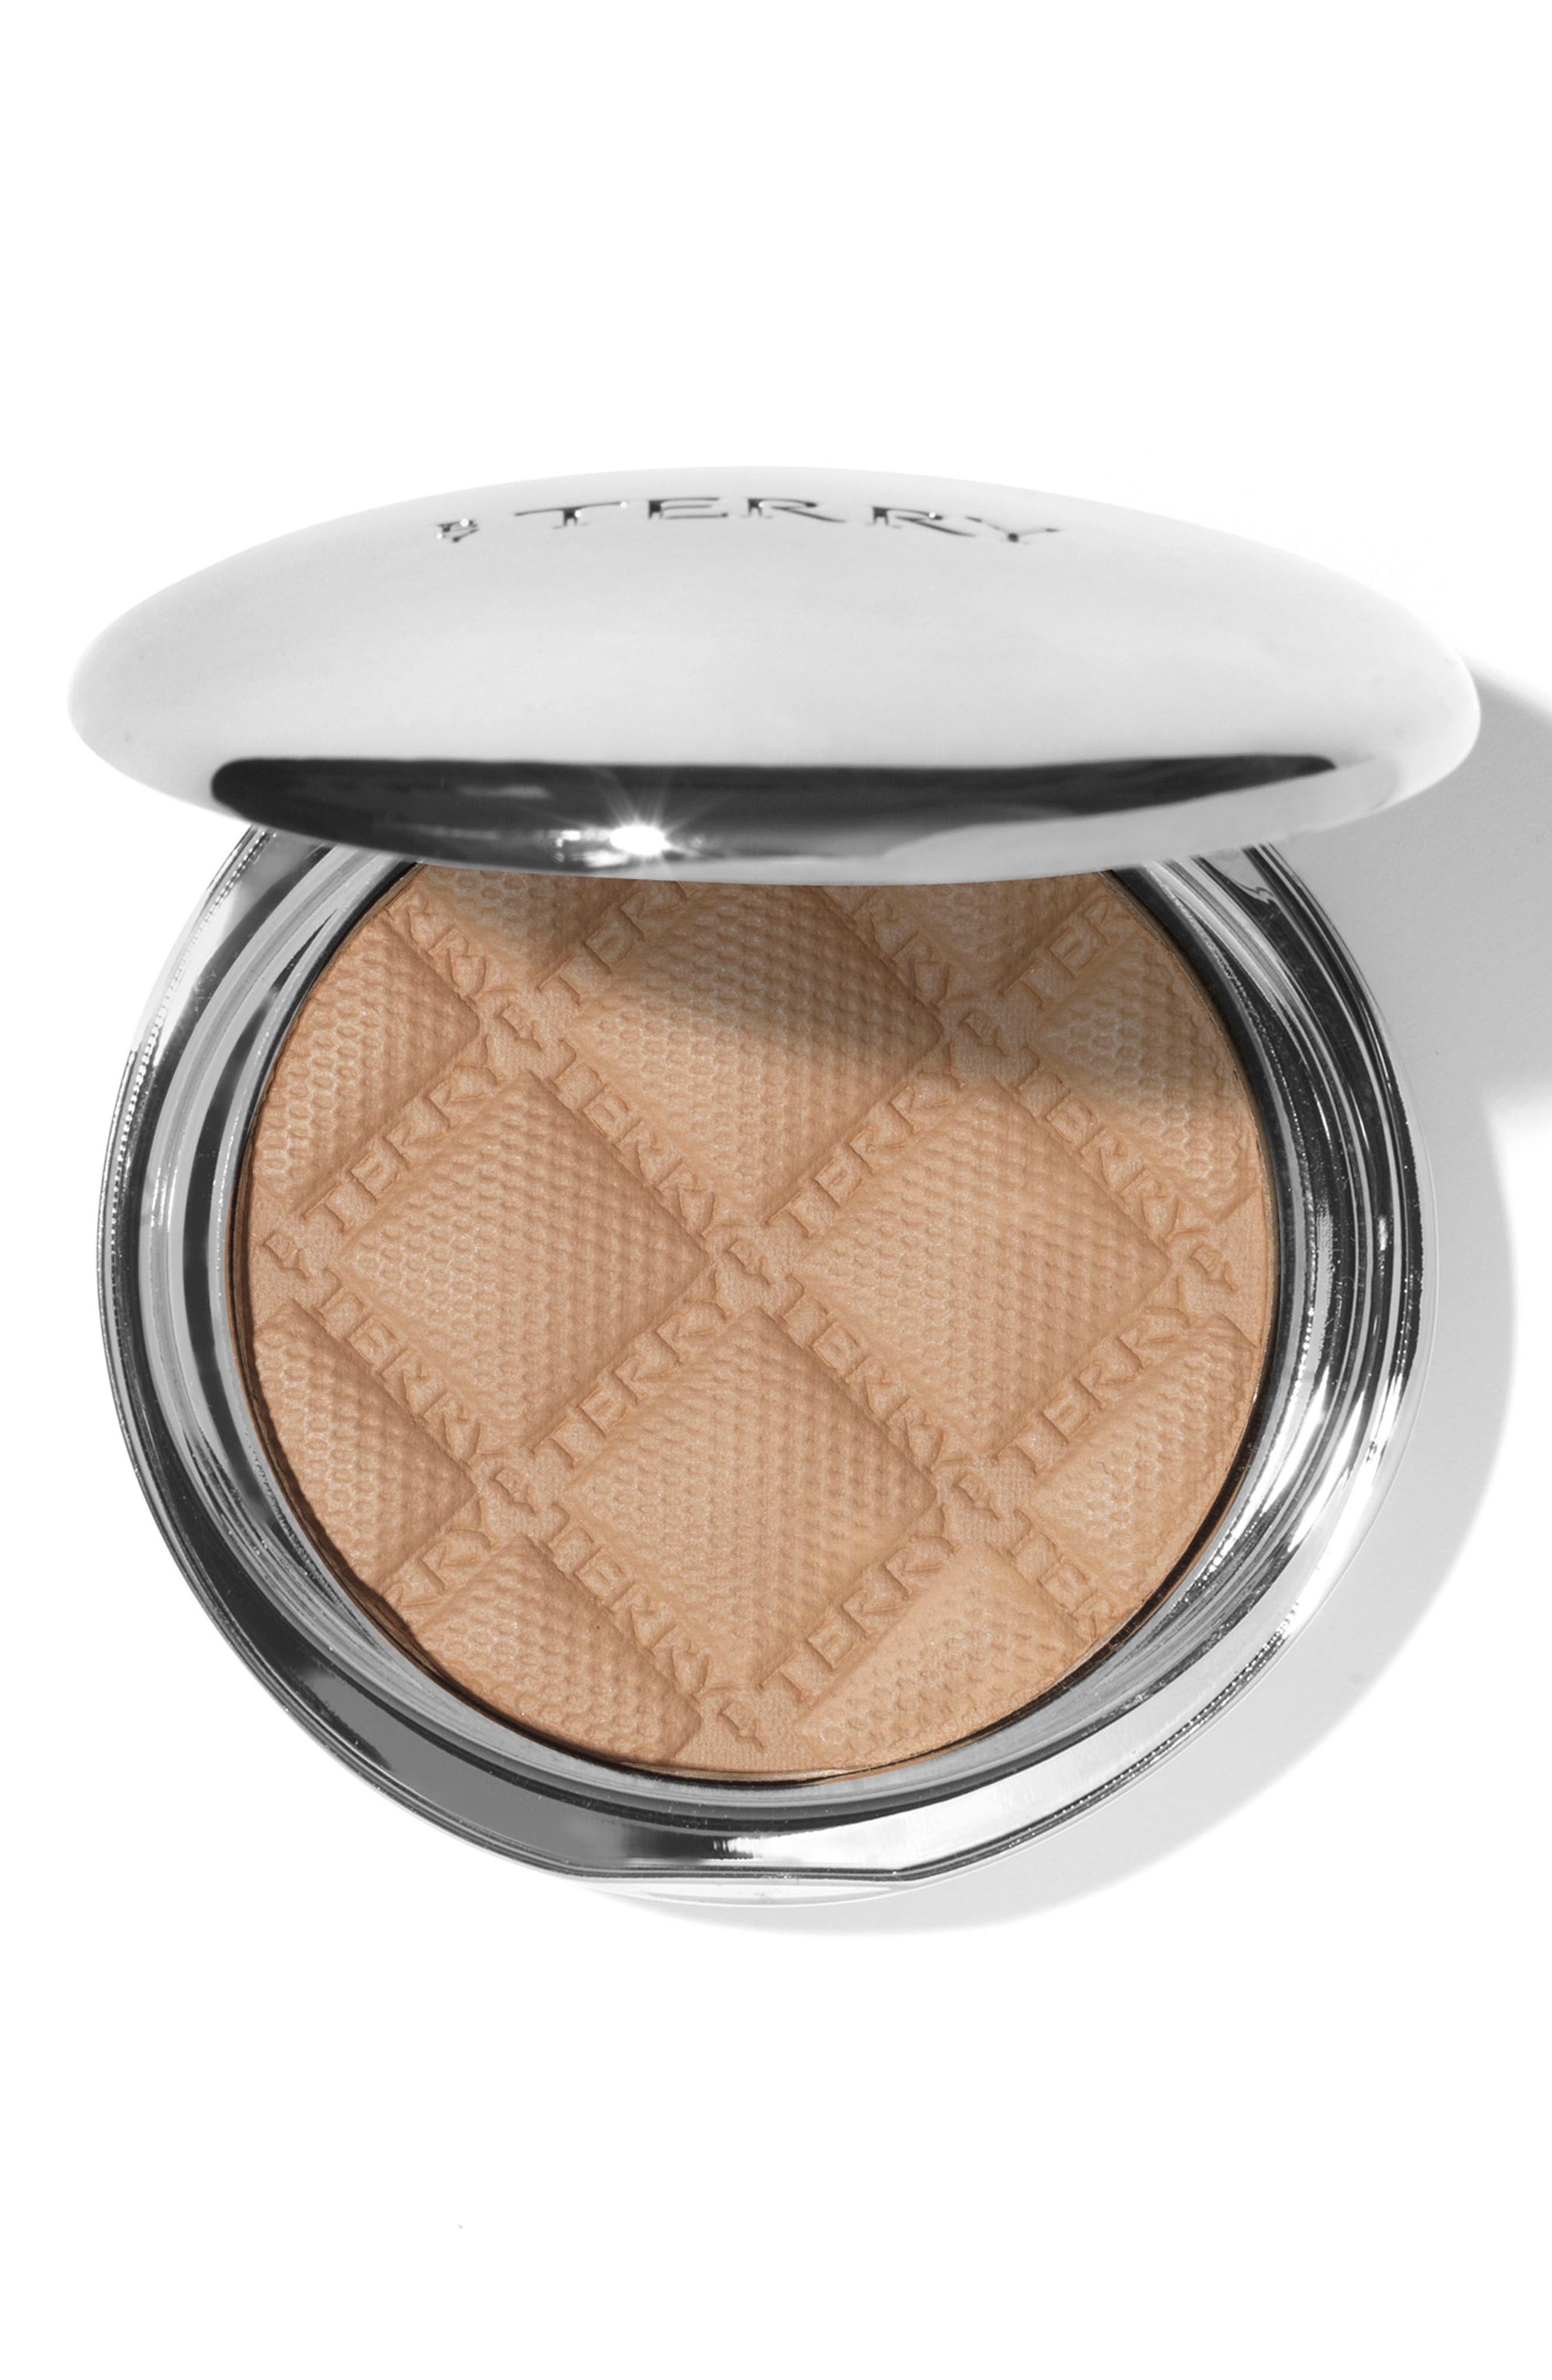 SPACE.NK.apothecary By Terry Terrybly Densiliss Compact Wrinkle Control Pressed Powder,                             Main thumbnail 1, color,                             250